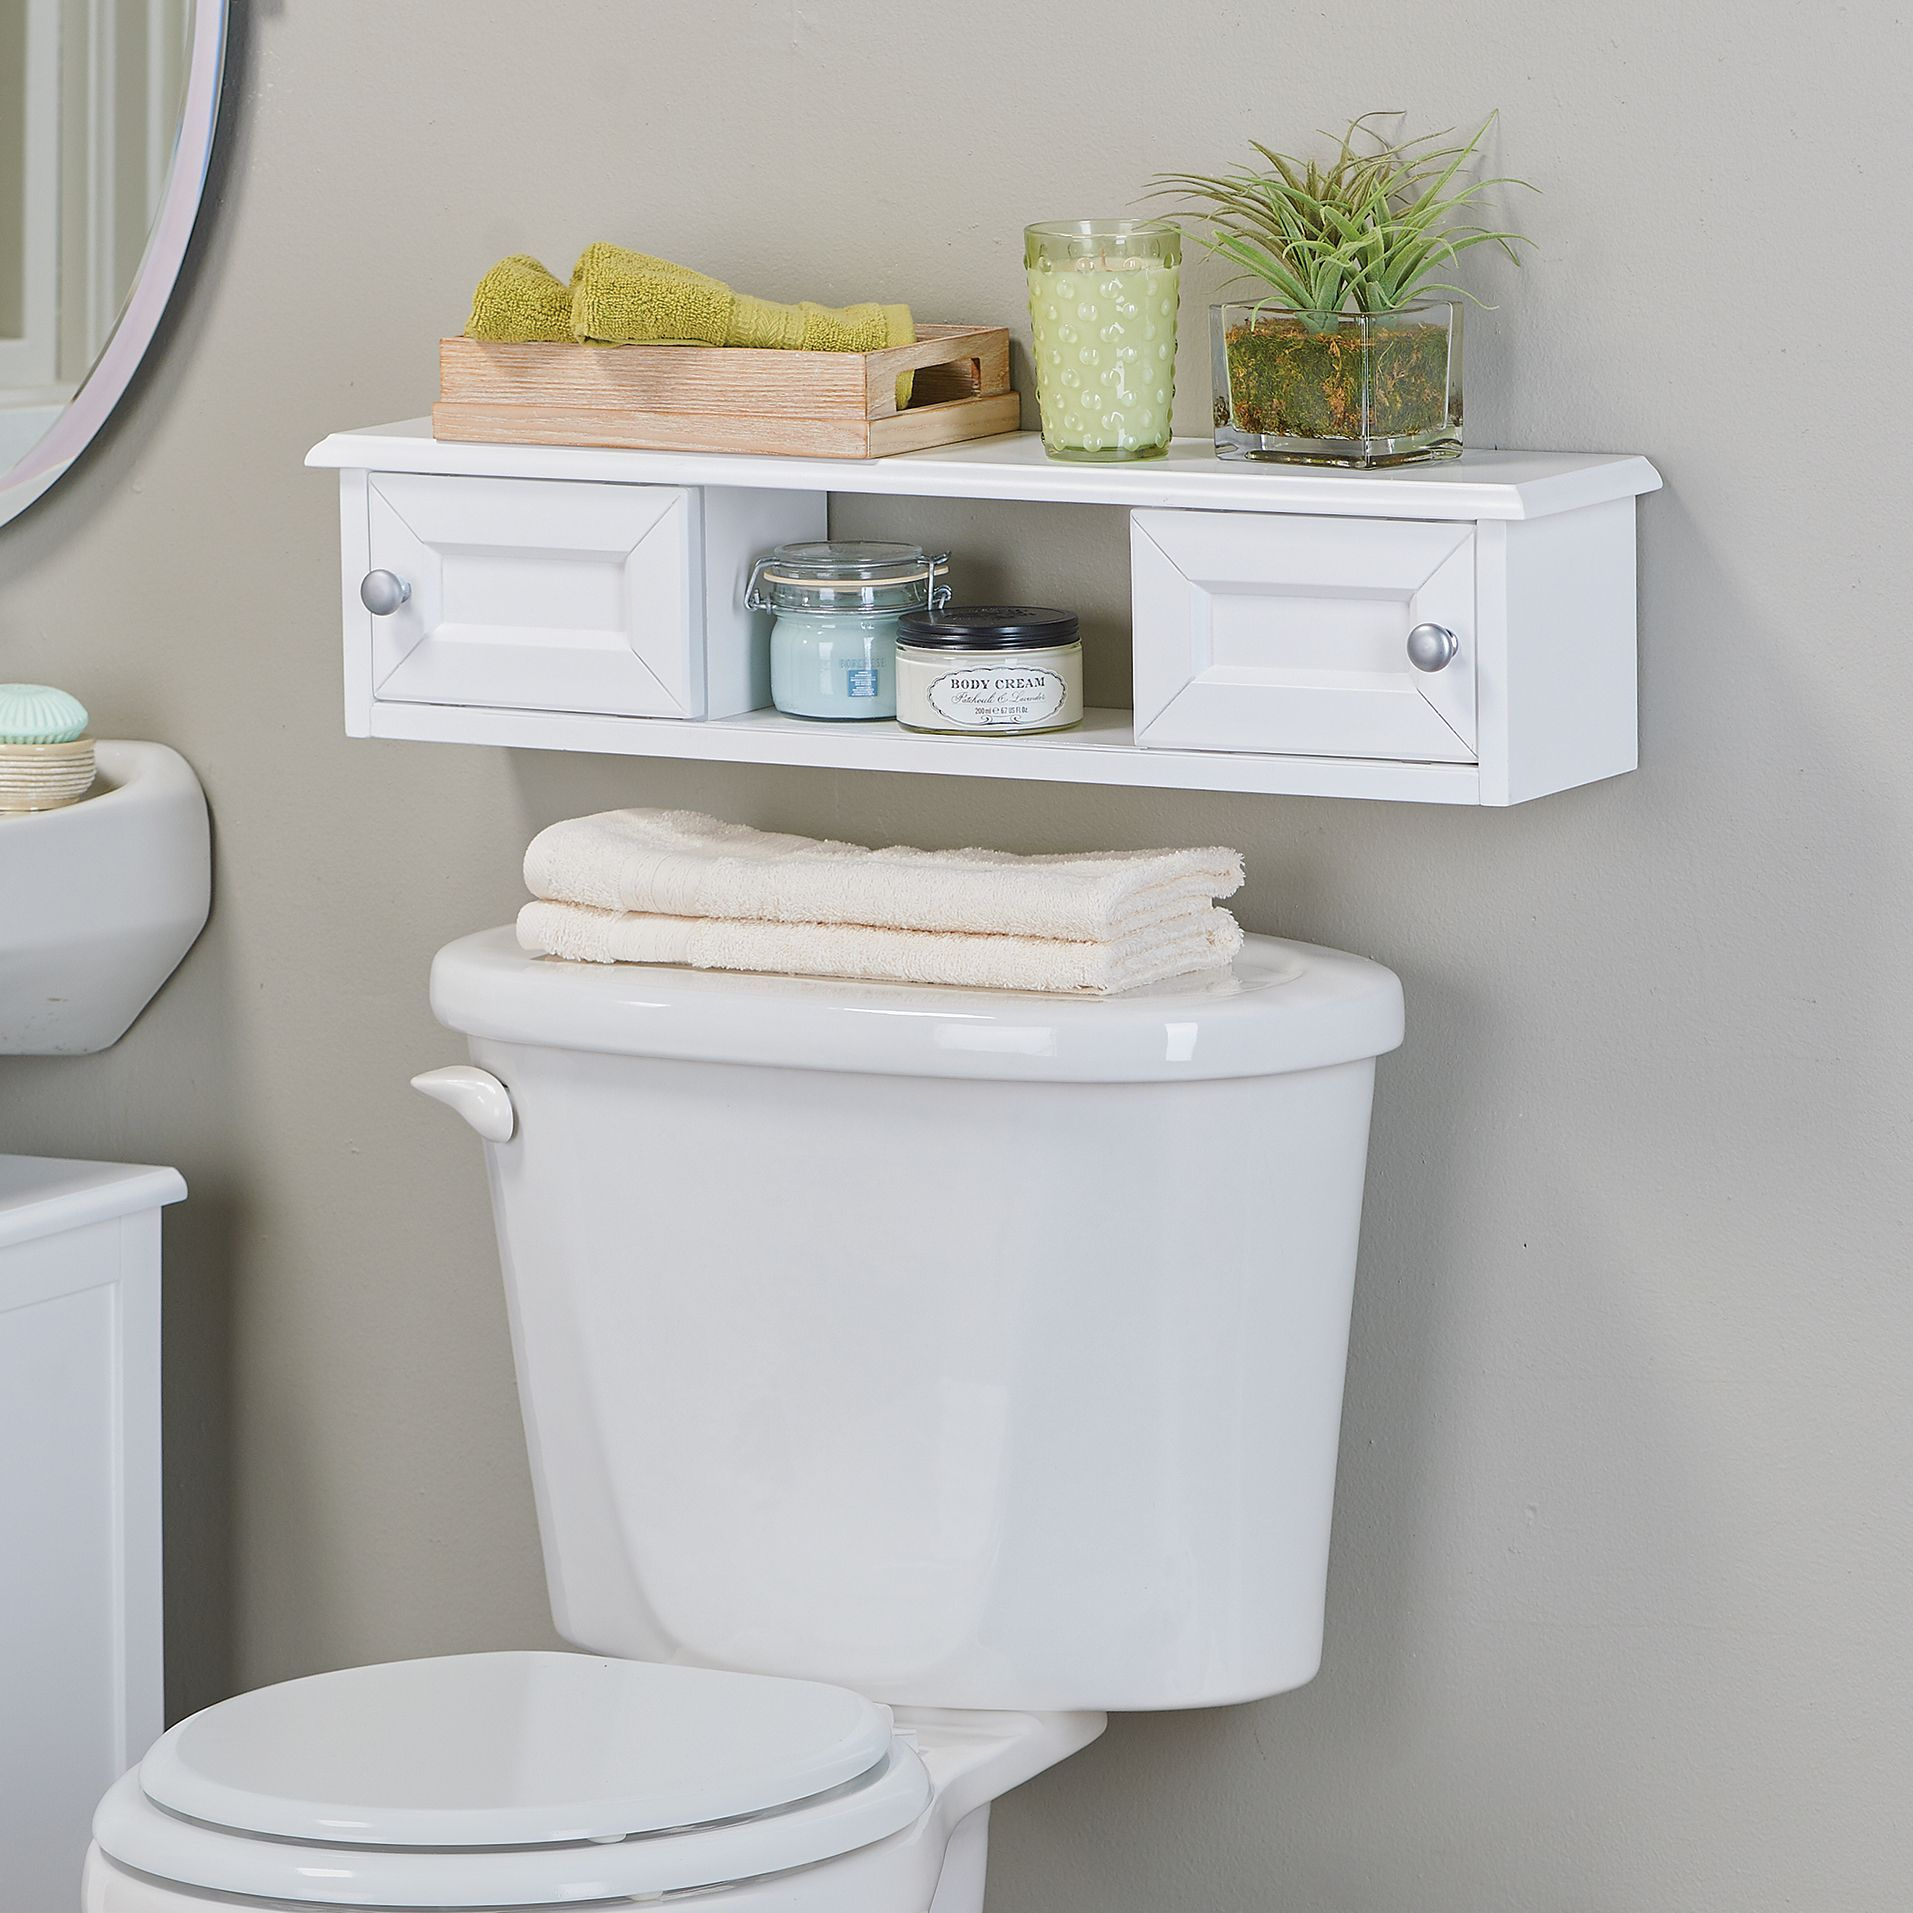 maximize storage space in your bathroom with our weatherby slim wall mounted cabinet this slim cabinet fits over a toilet or on any wall for extra bathroom